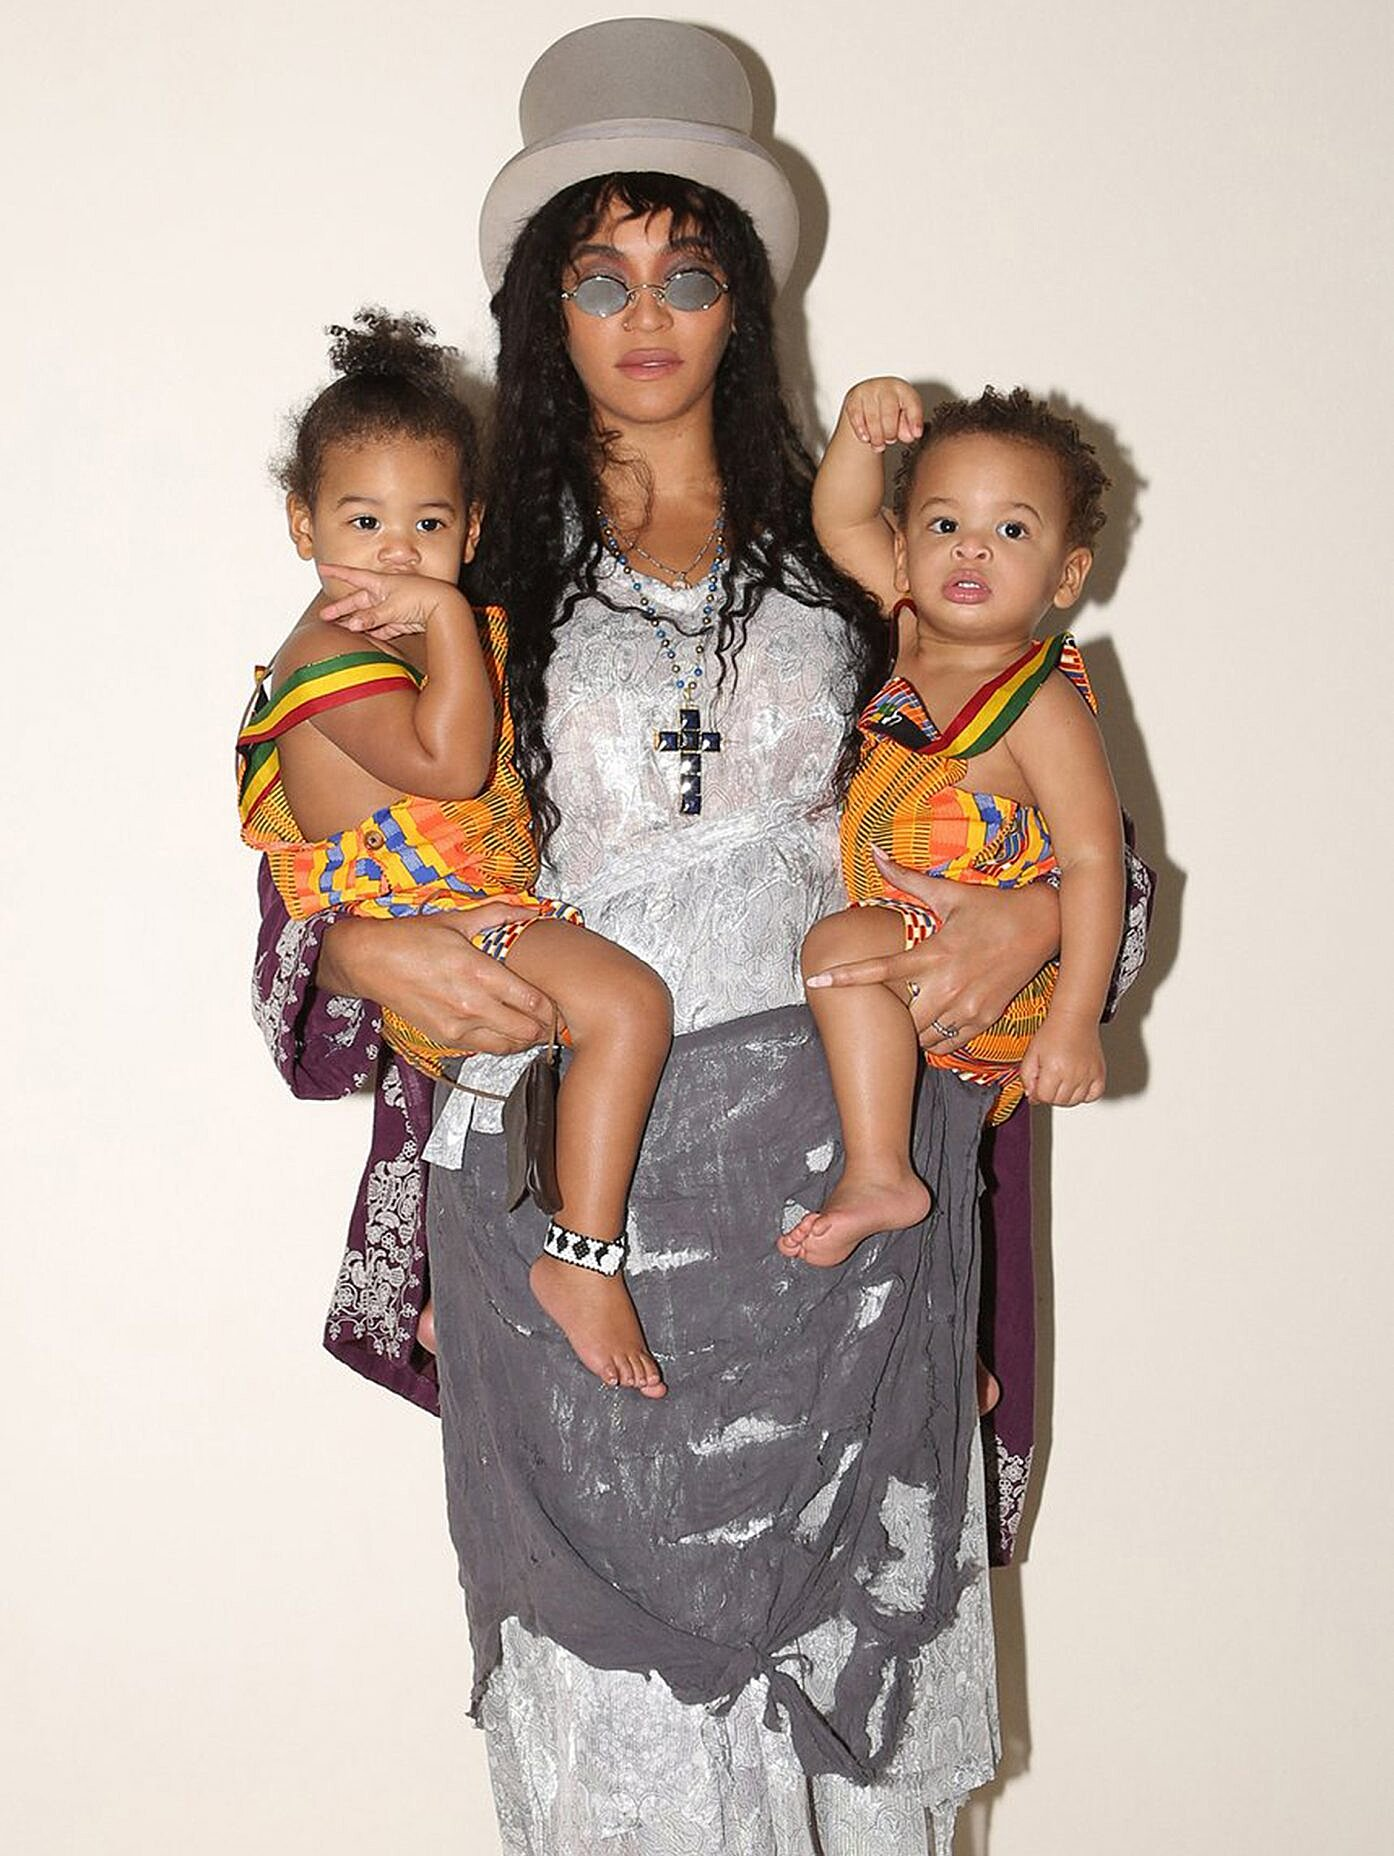 beyonce shares rare photo of twins sir